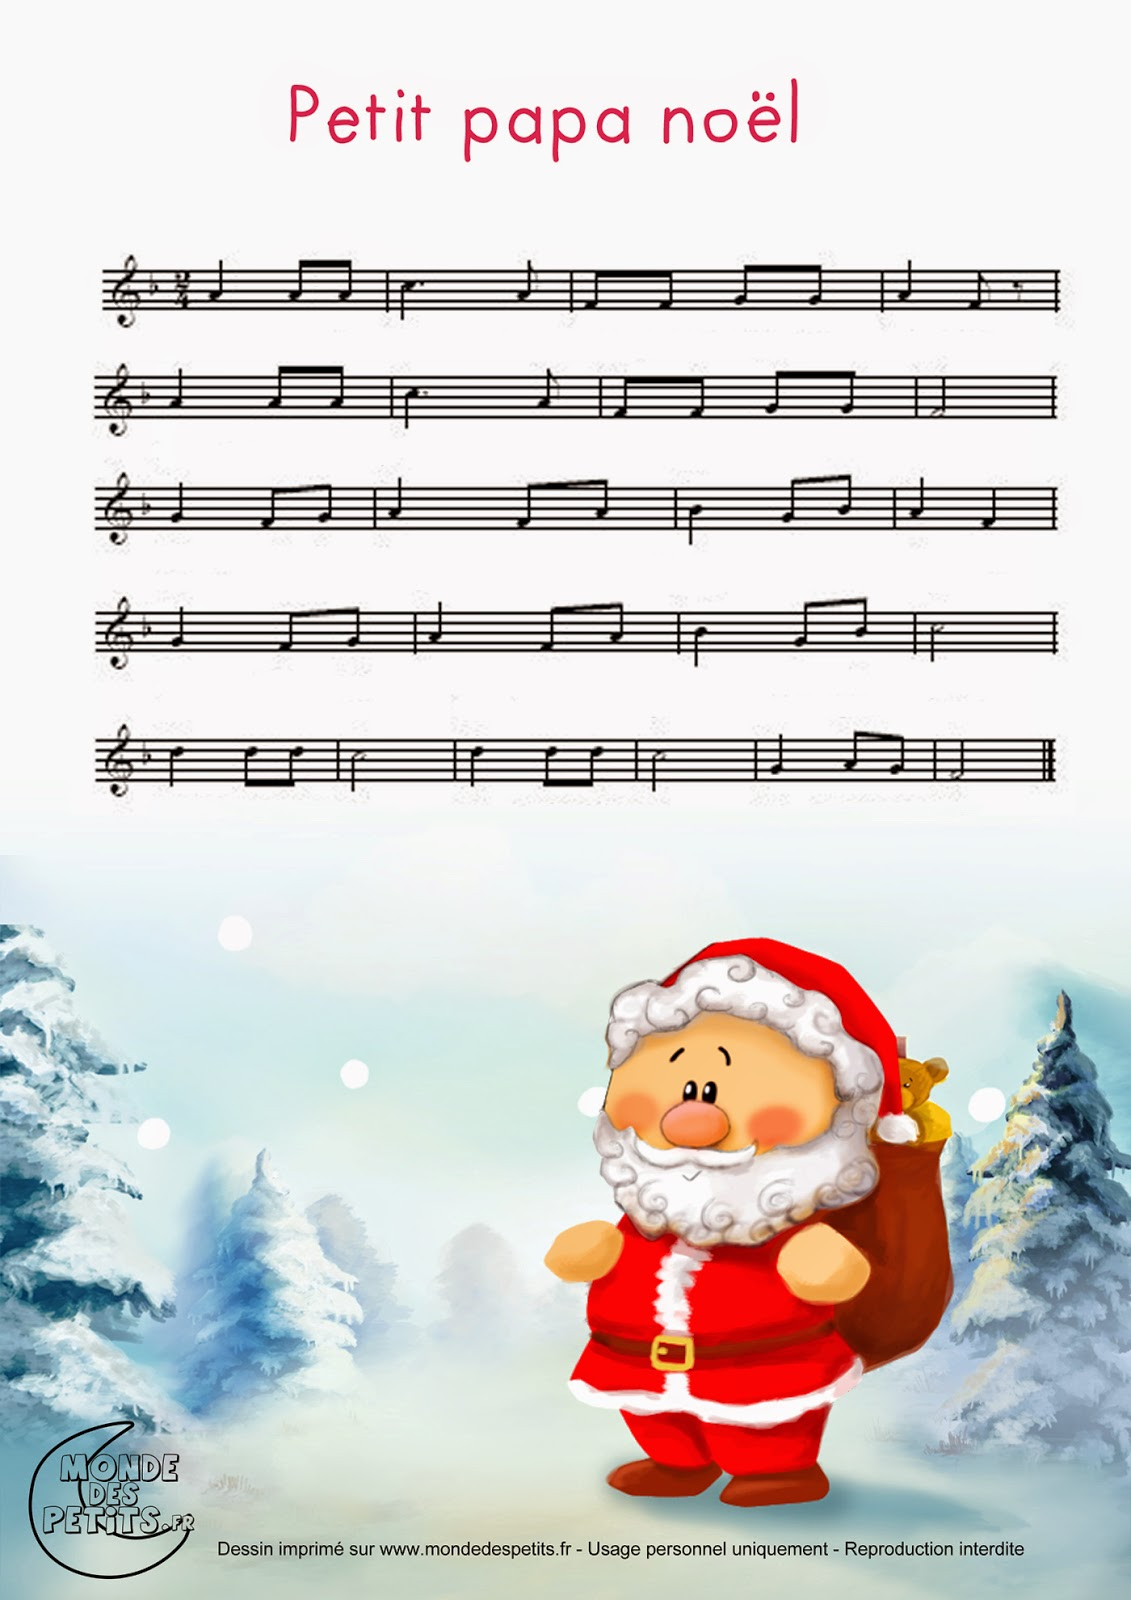 Learn&play - Histoires De Pompoms Wish You A Merry Christmas pour Petit Papa Noel Video